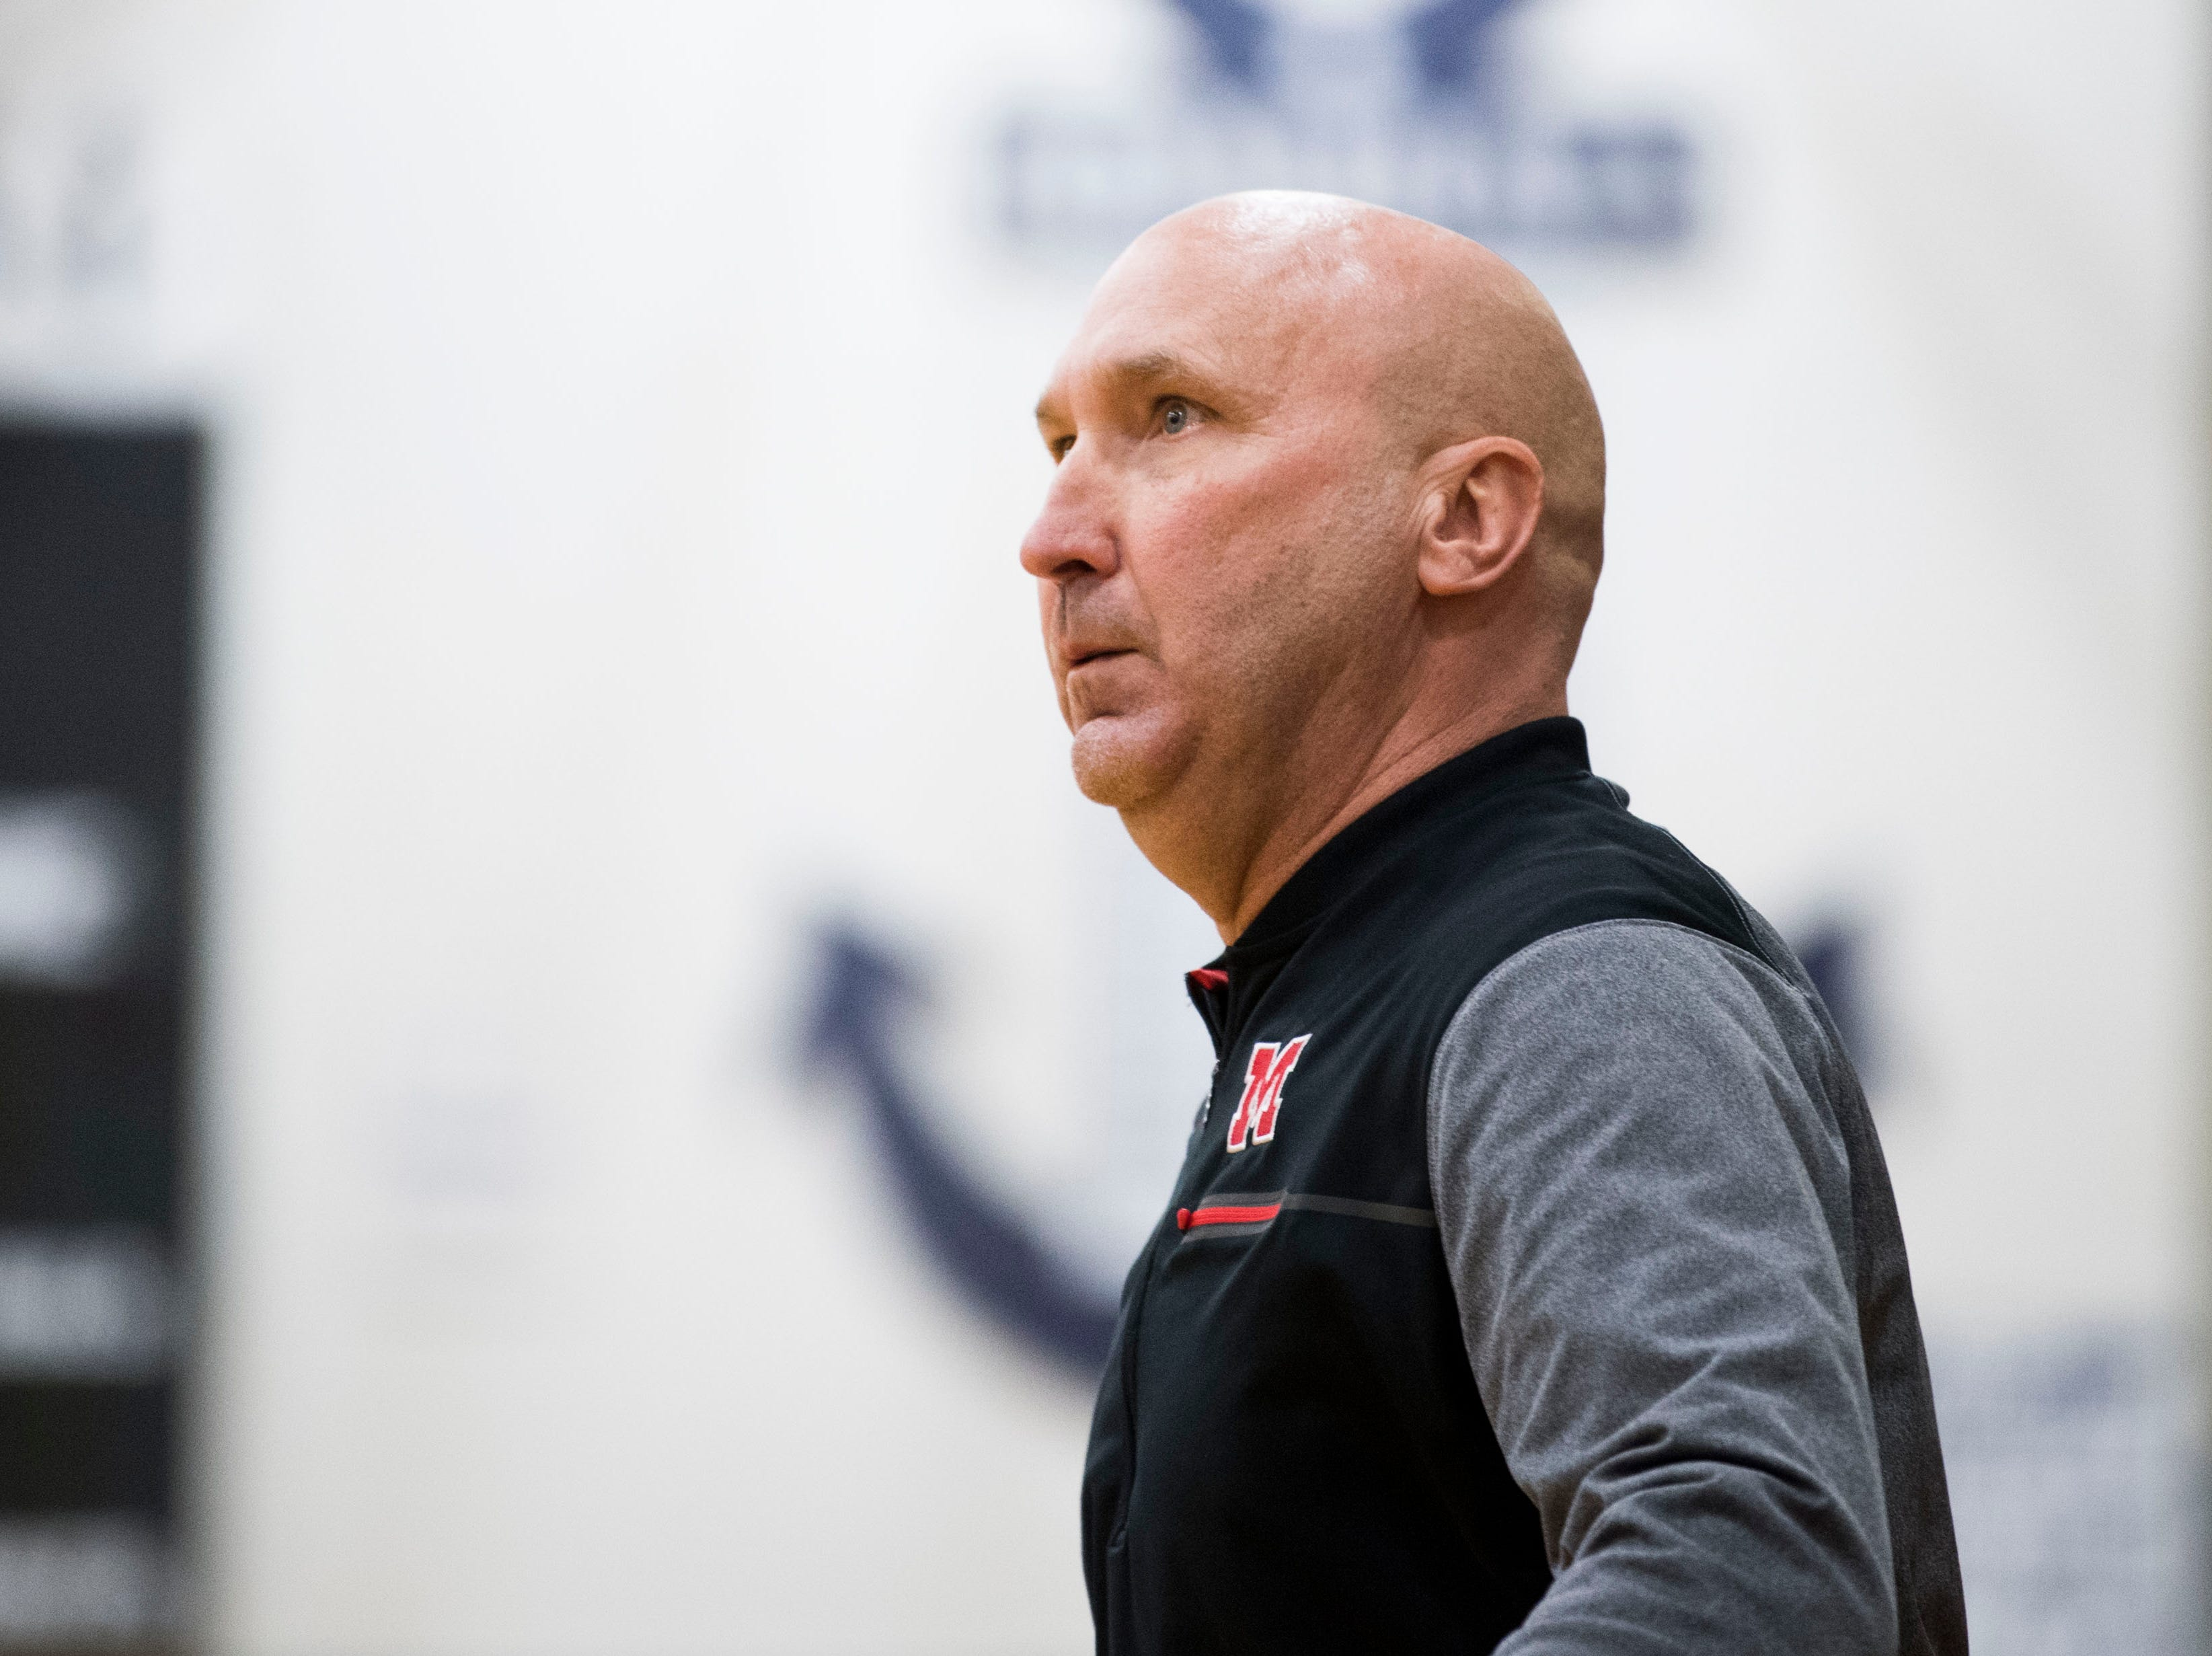 Maryville coach Scott West watches the game during a high school basketball game between Maryville and Farragut at Farragut, Friday, Jan. 11, 2019.